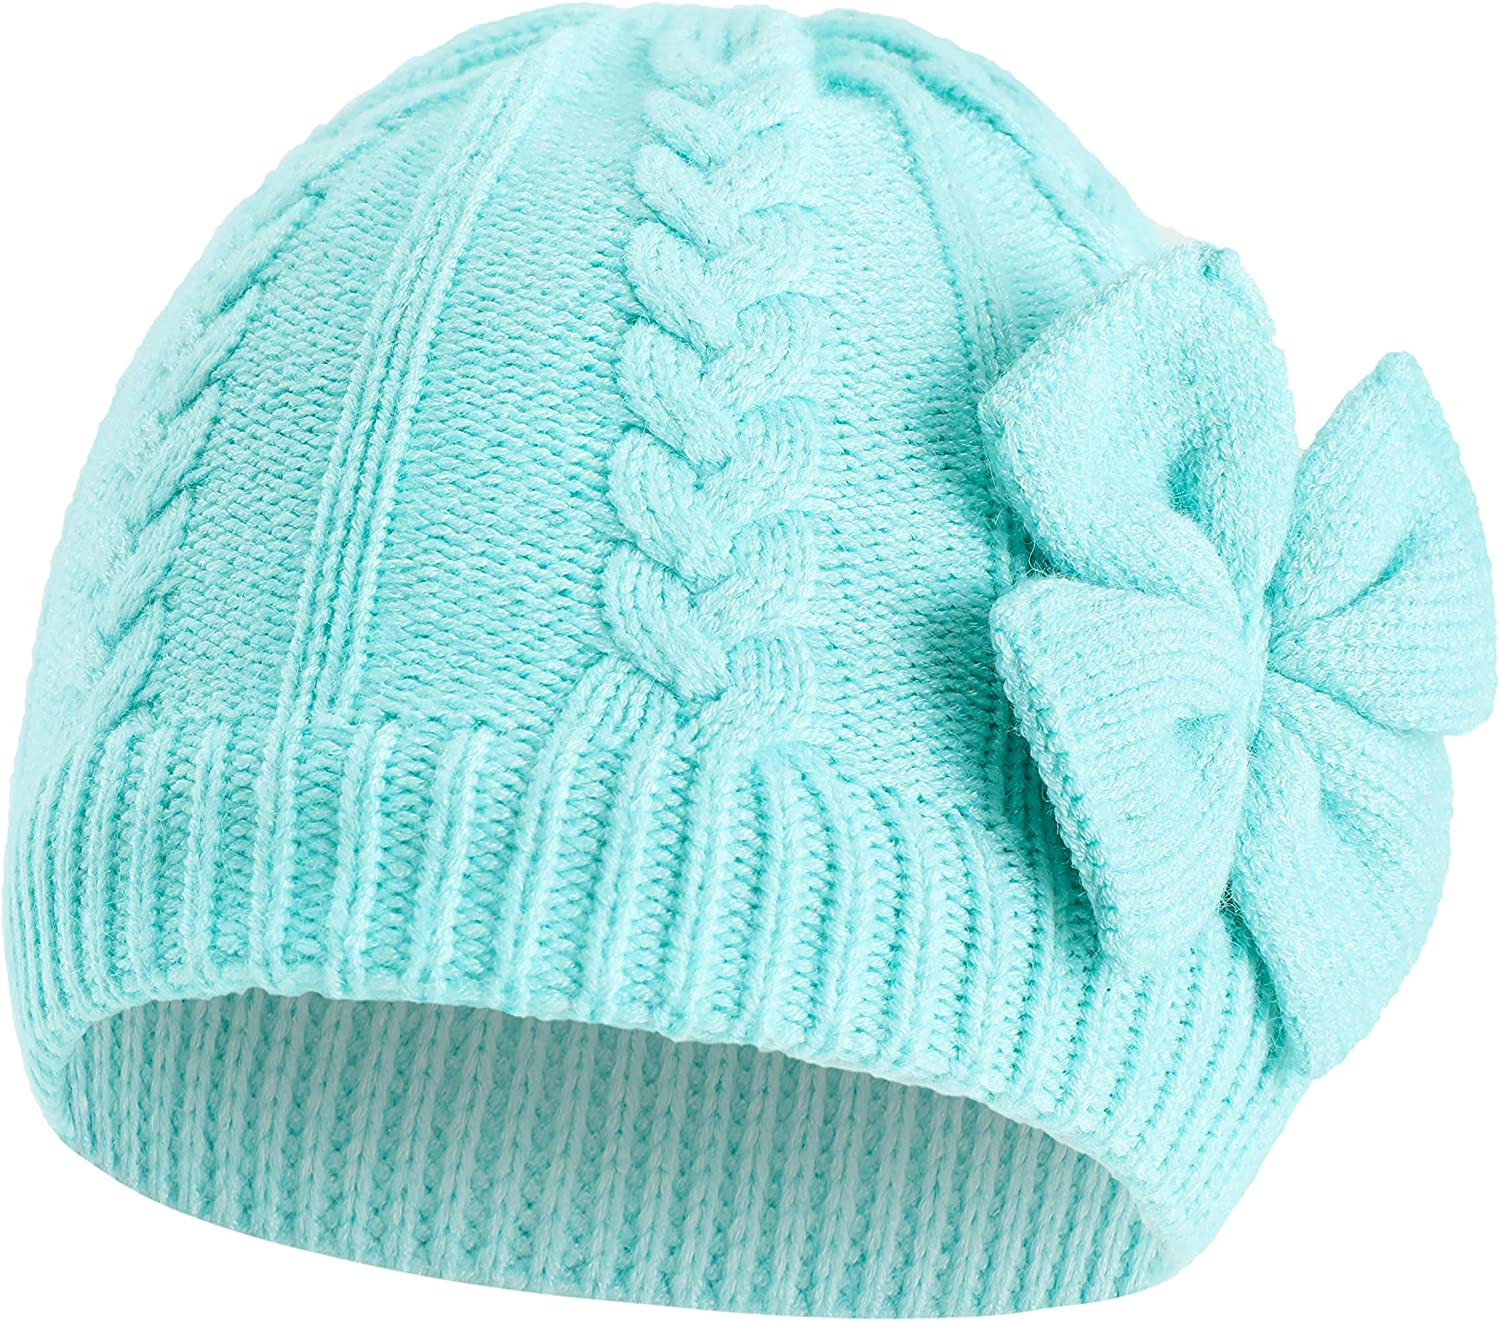 M, Pink Winter Warm Knitted Hat For Toddler Baby Girls Nice Solid Color Bow Sweater Cap Head Accessory Cap Hat